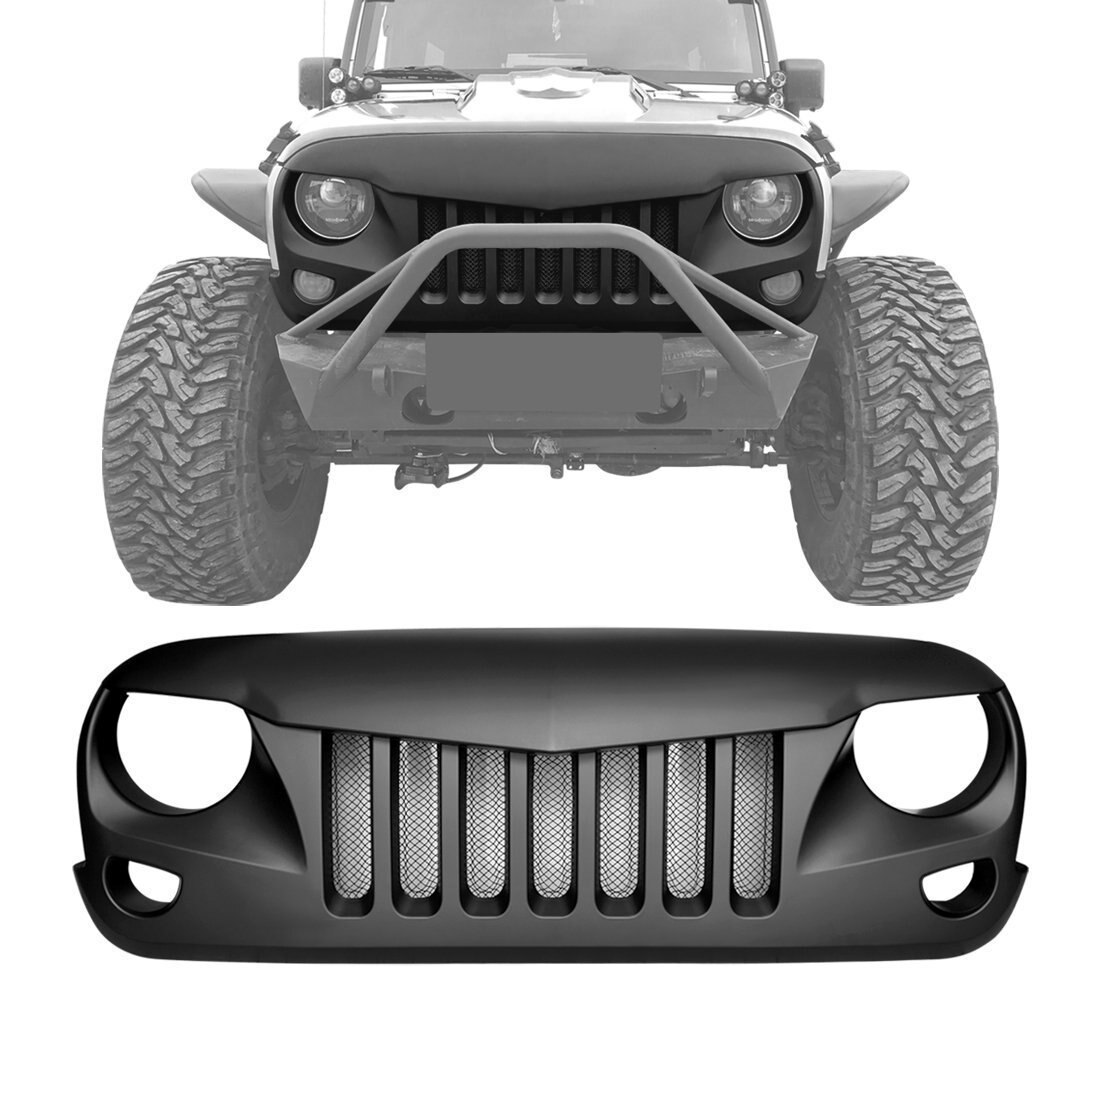 Eagle Eye Grille with Built-In Mesh for Jeep Wrangler 07-17